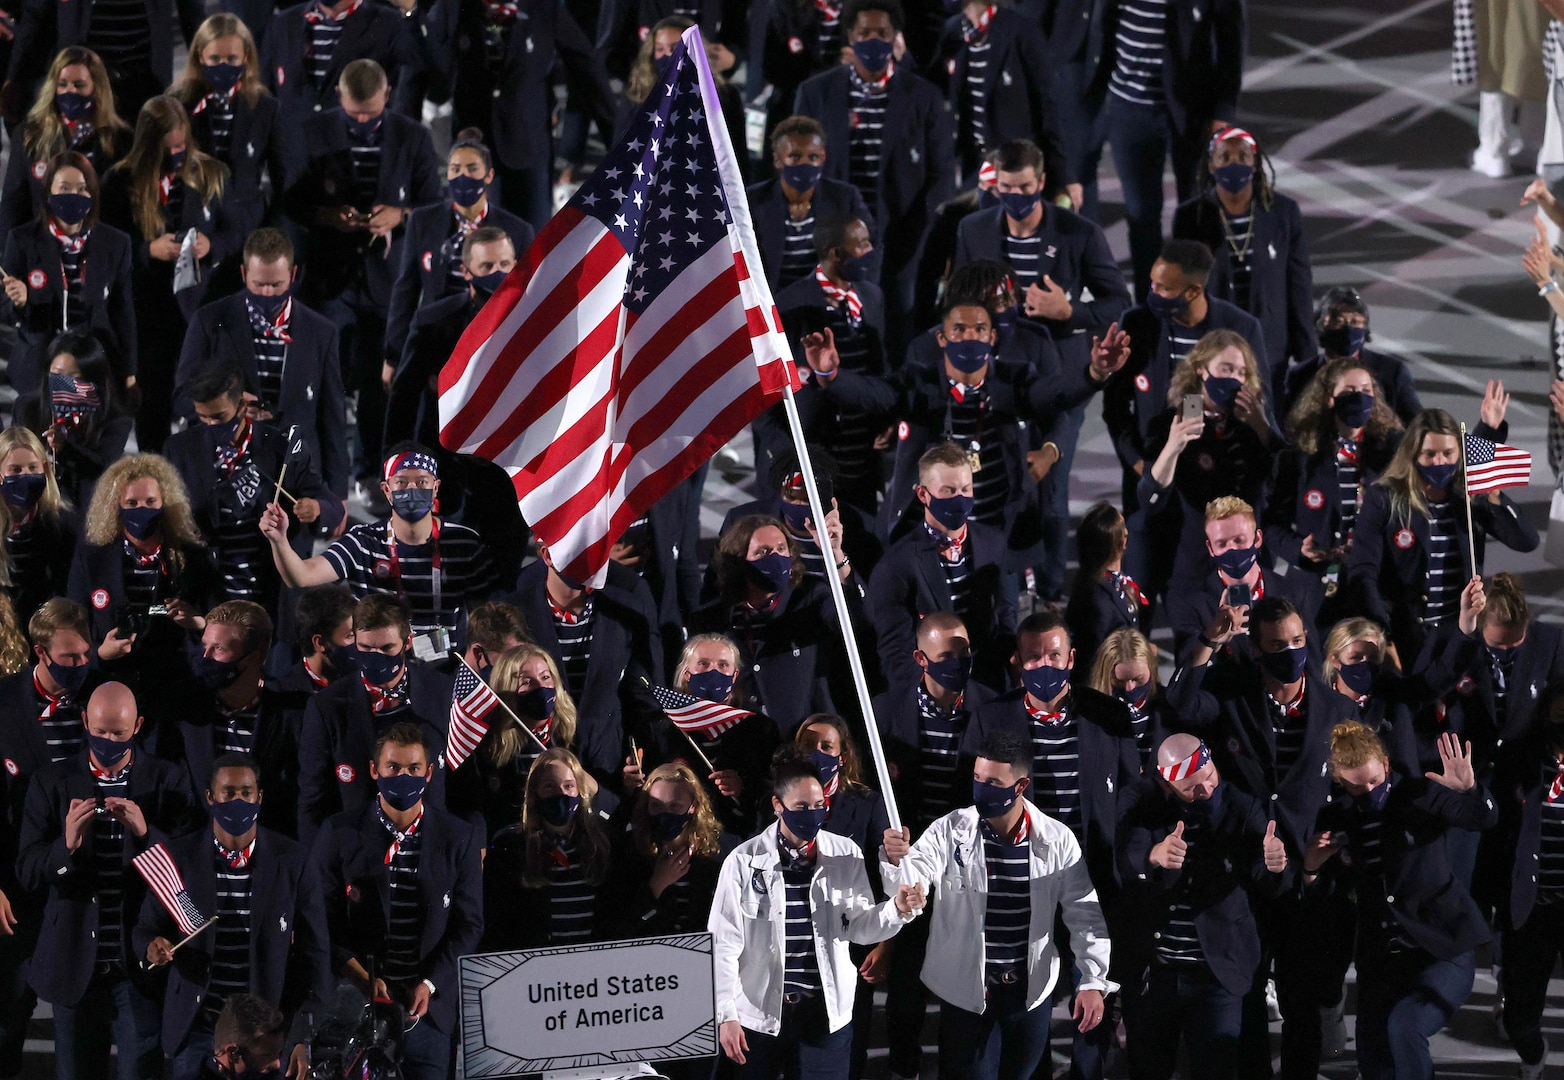 TOKYO, JAPAN - JULY 23: Flag bearers Sue Bird and Eddy Alvares of Team United States lead their team out during the Opening Ceremony of the Tokyo 2020 Olympic Games at Olympic Stadium on July 23, 2021 in Tokyo, Japan.